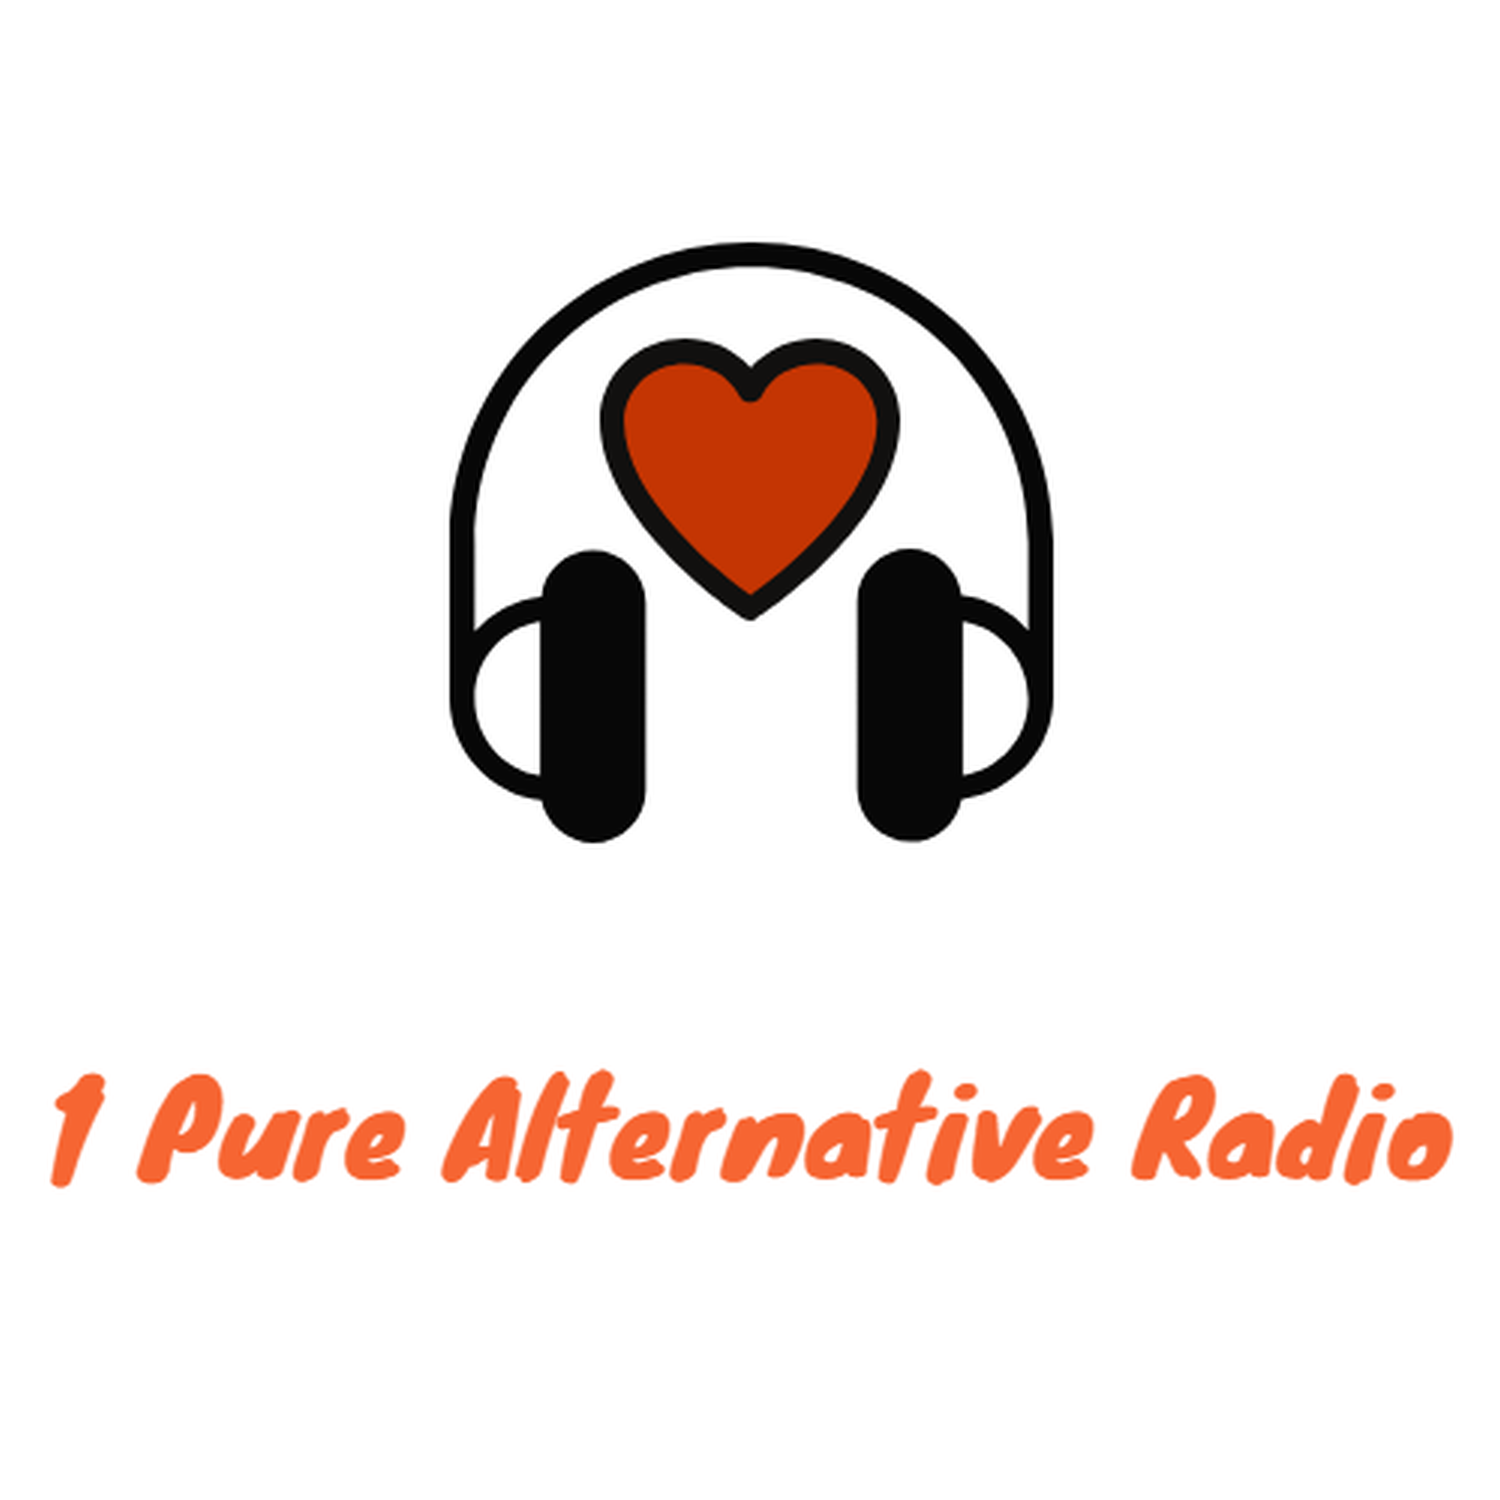 1 Pure Alternative